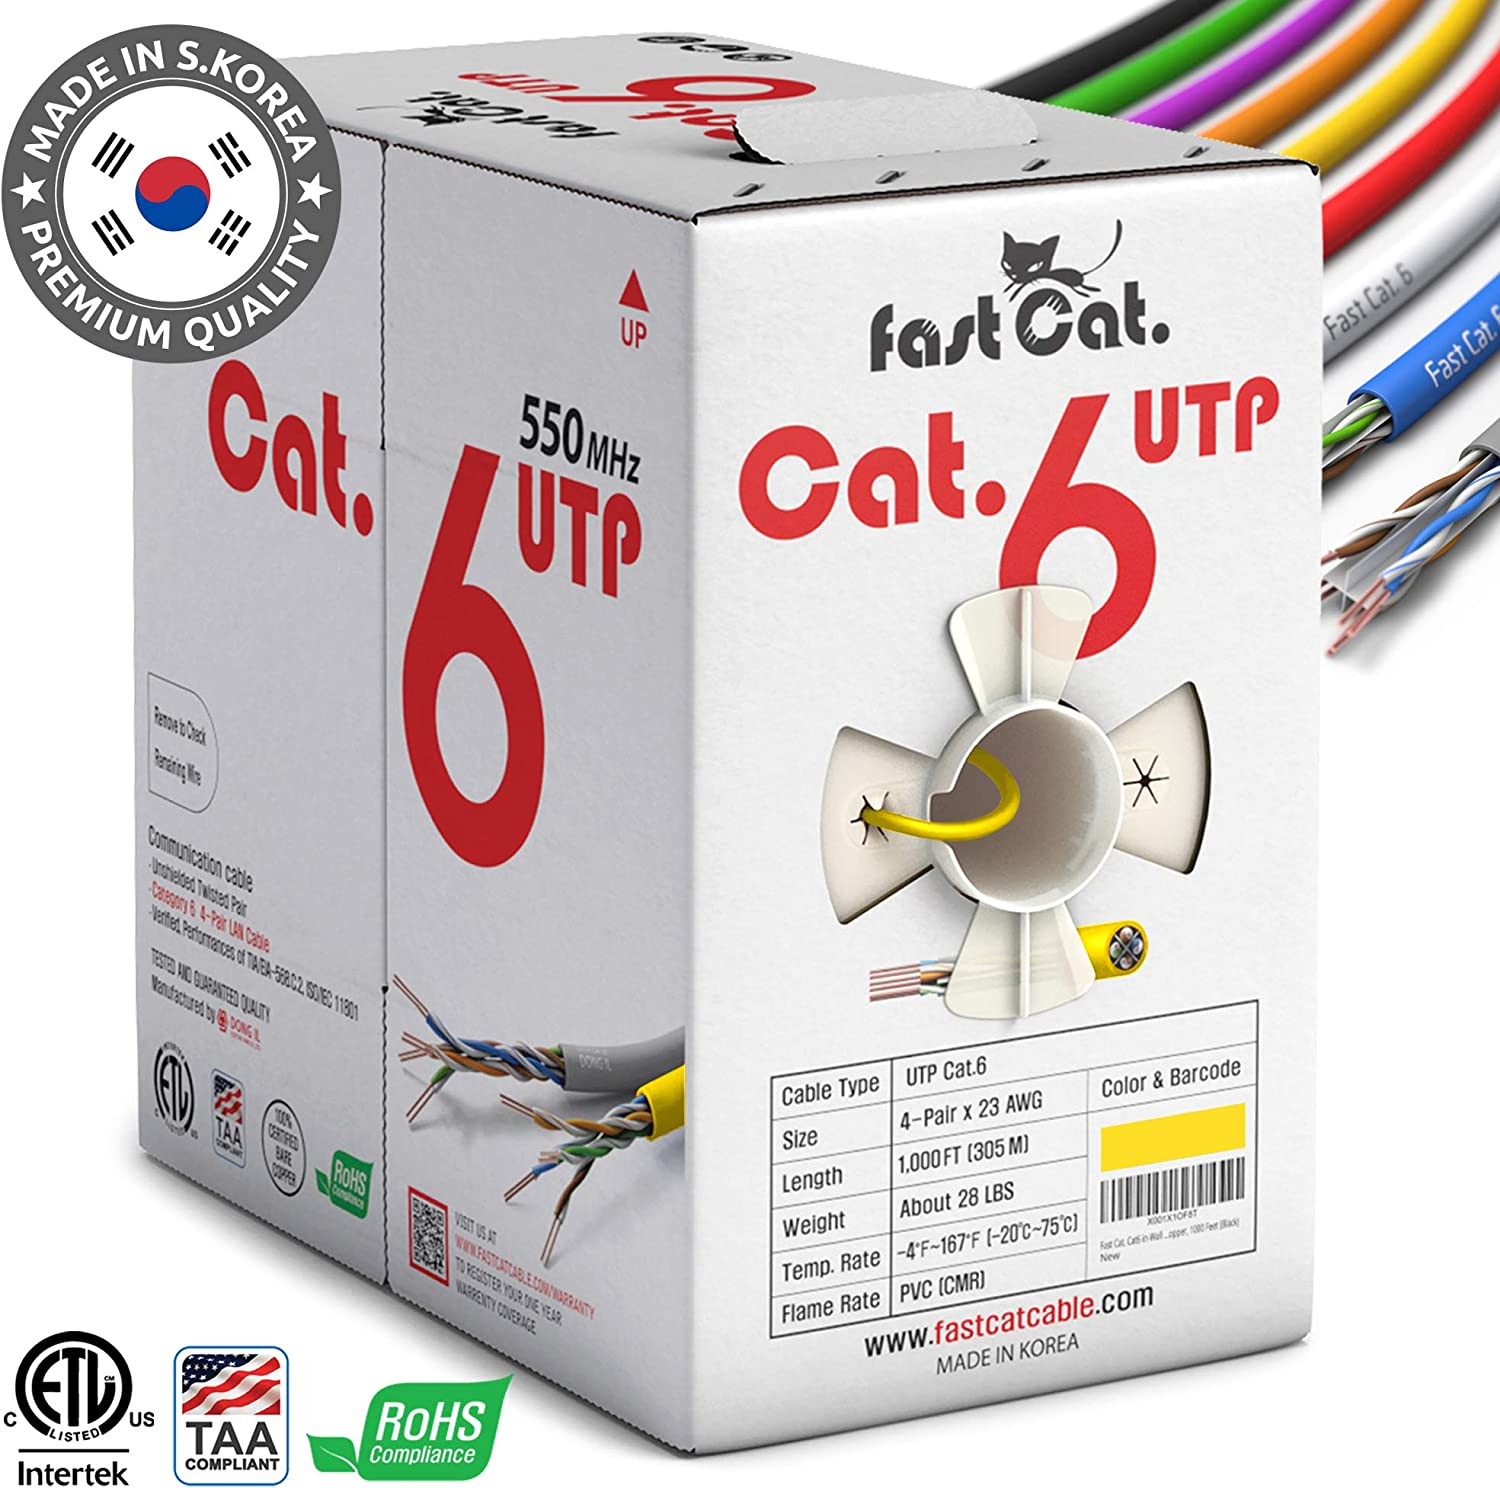 fast Cat. Cat6 Ethernet Cable 1000ft - Insulated Bare Copper Wire Internet Cable with Noise Reducing Cross Separator - 550MHZ / 10 Gigabit Speed UTP LAN Cable 1000 ft - CMR (Yellow)